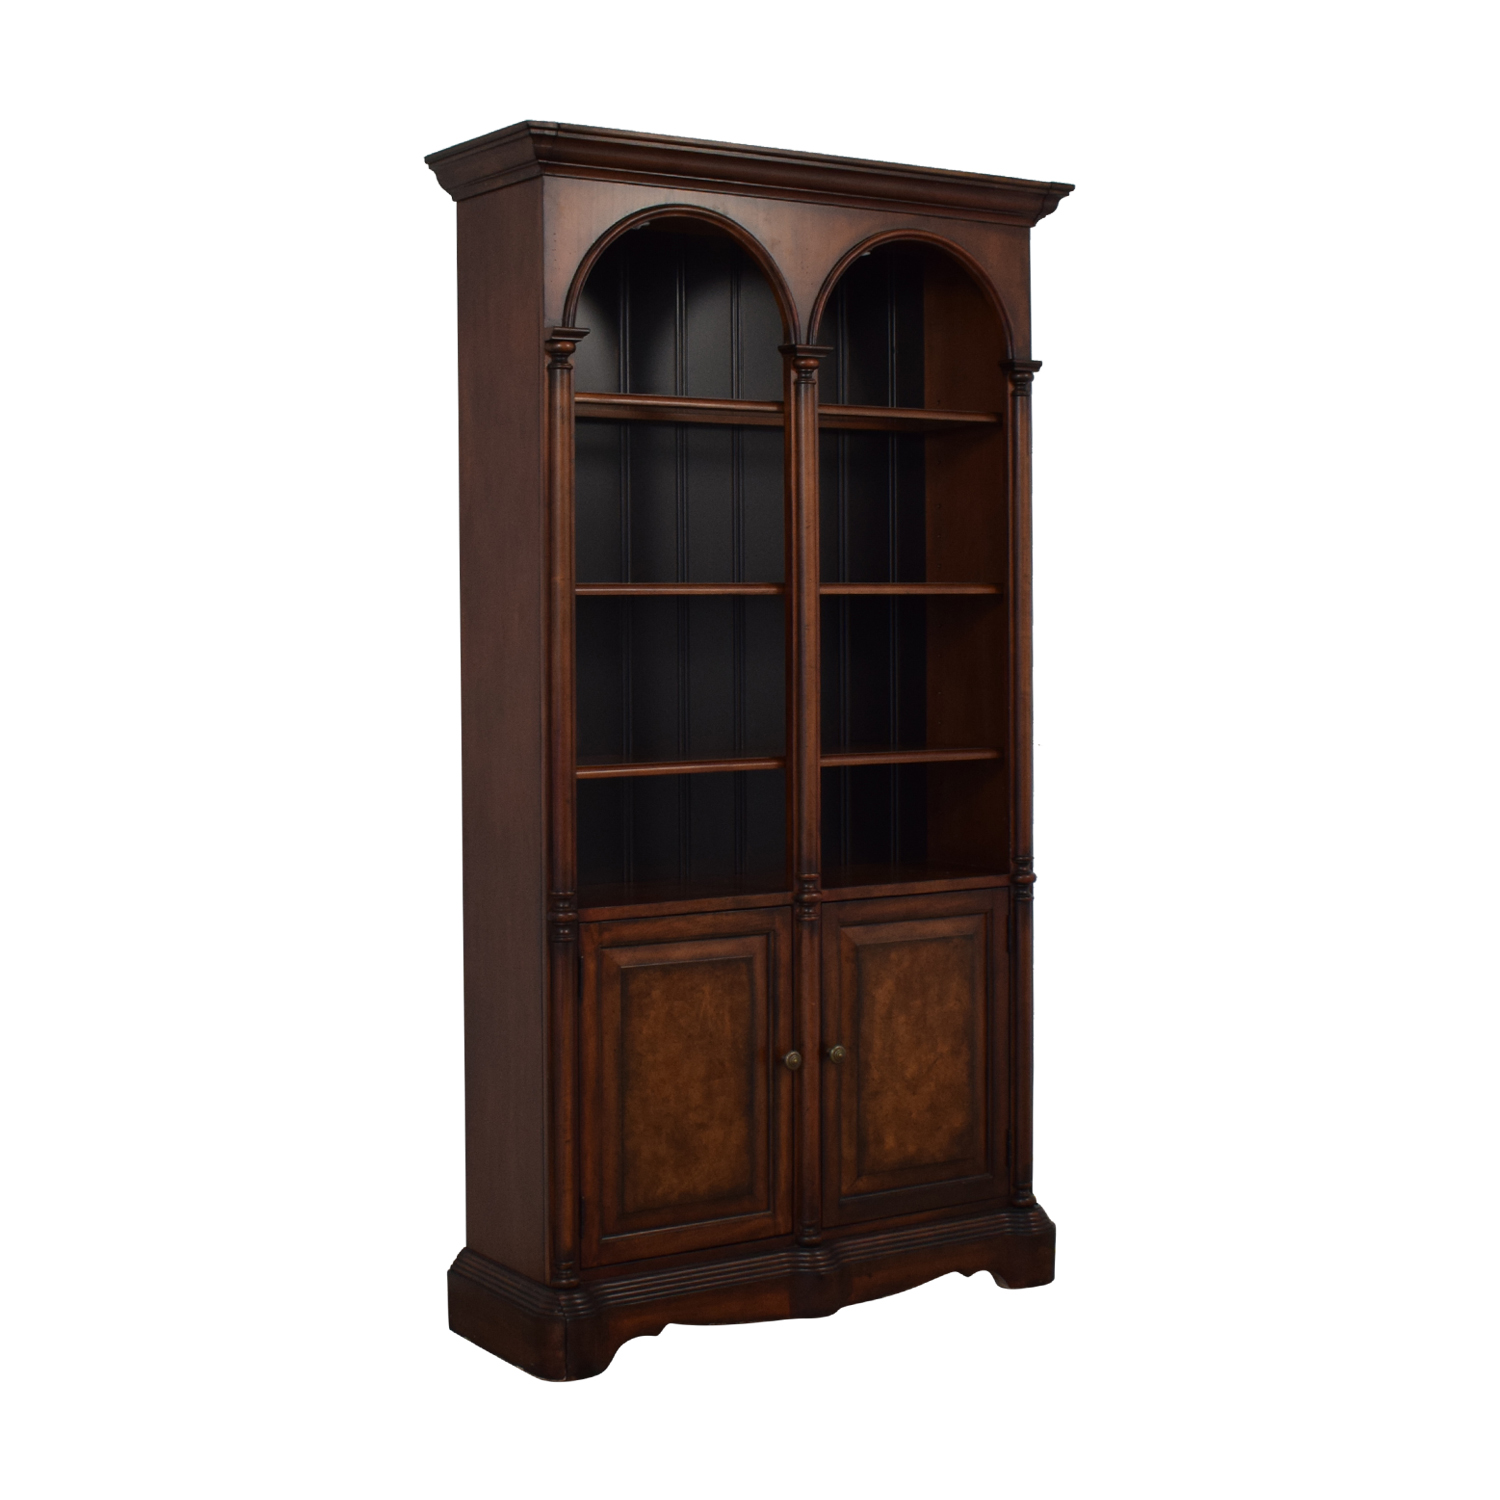 Hooker Furniture Hooker Furniture Bunching Bookcase dimensions